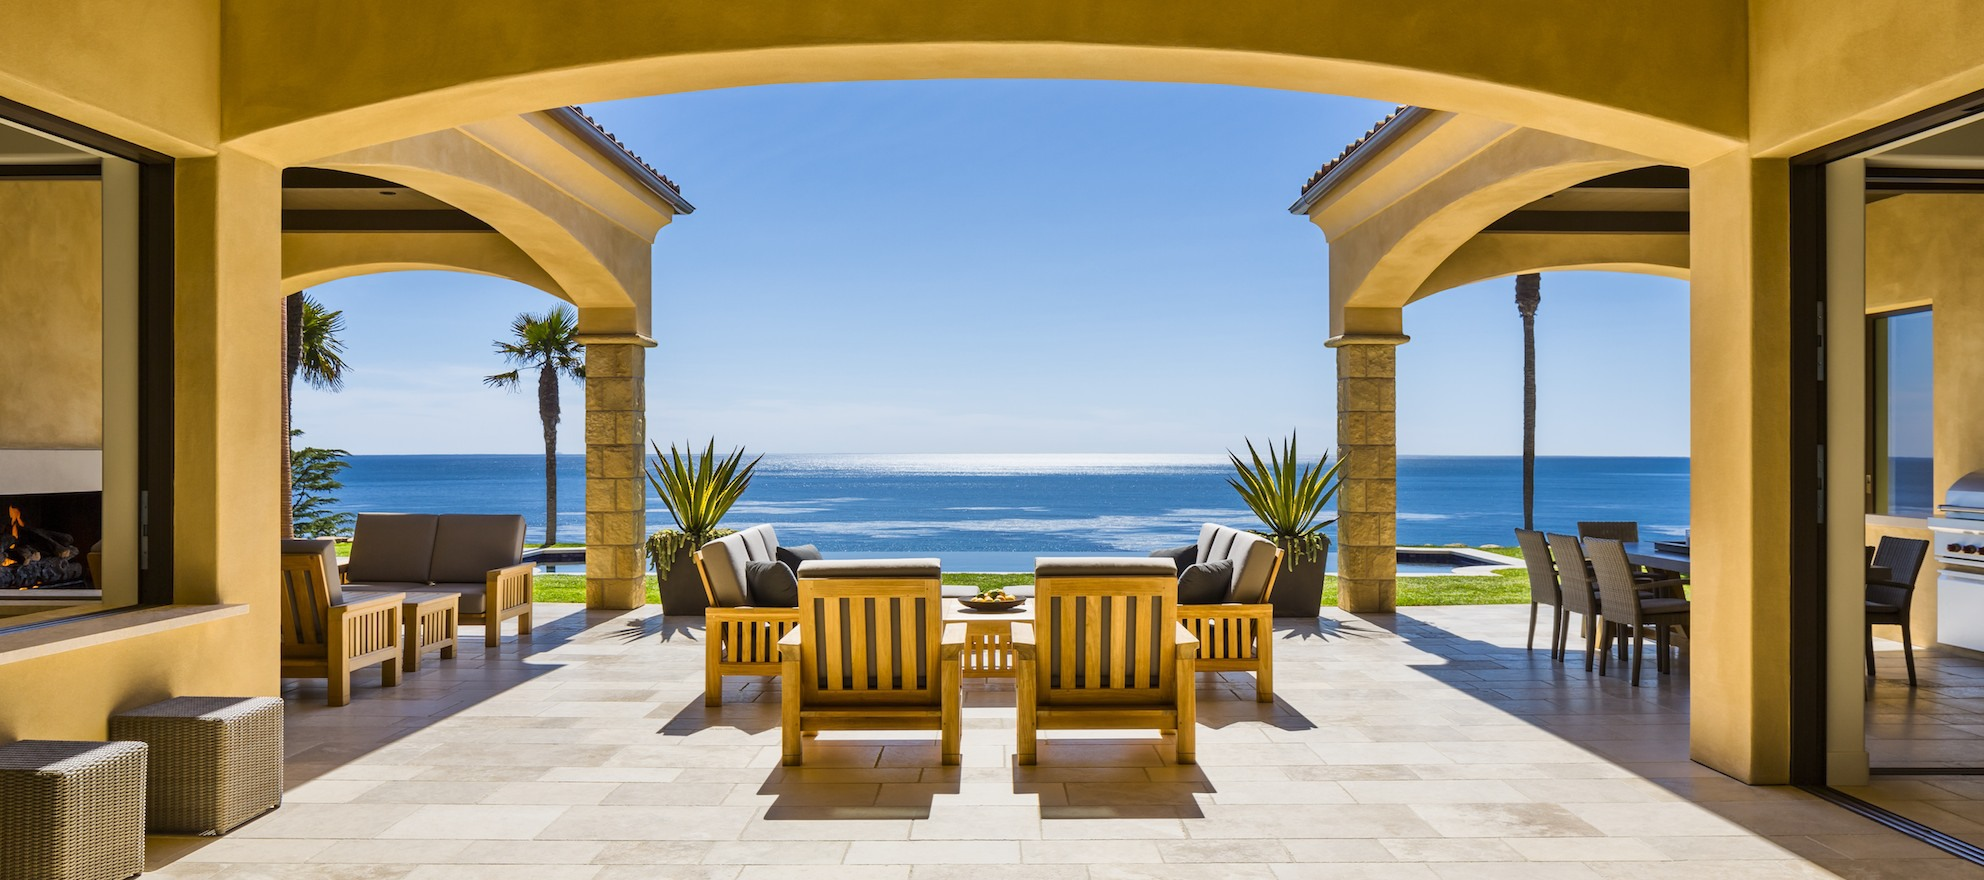 malibu luxury listings